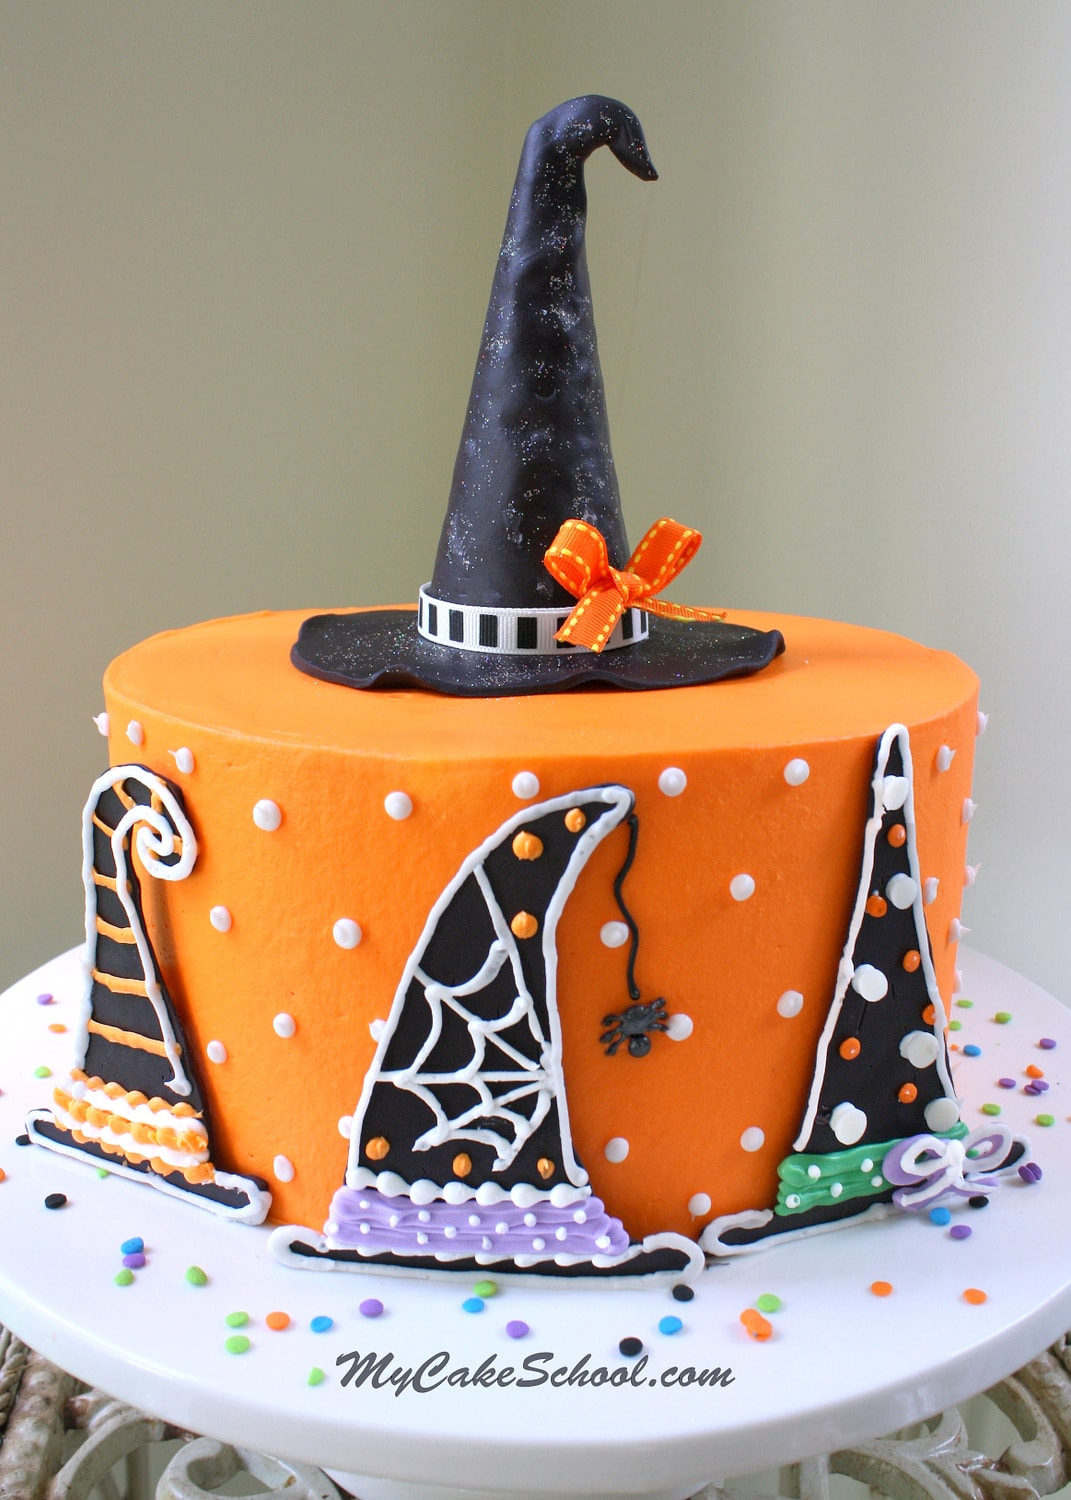 Learn how to make a Witch Hat themed cake in this CUTE and free cake tutorial by MyCakeSchool.com! PERFECT for Halloween Parties!